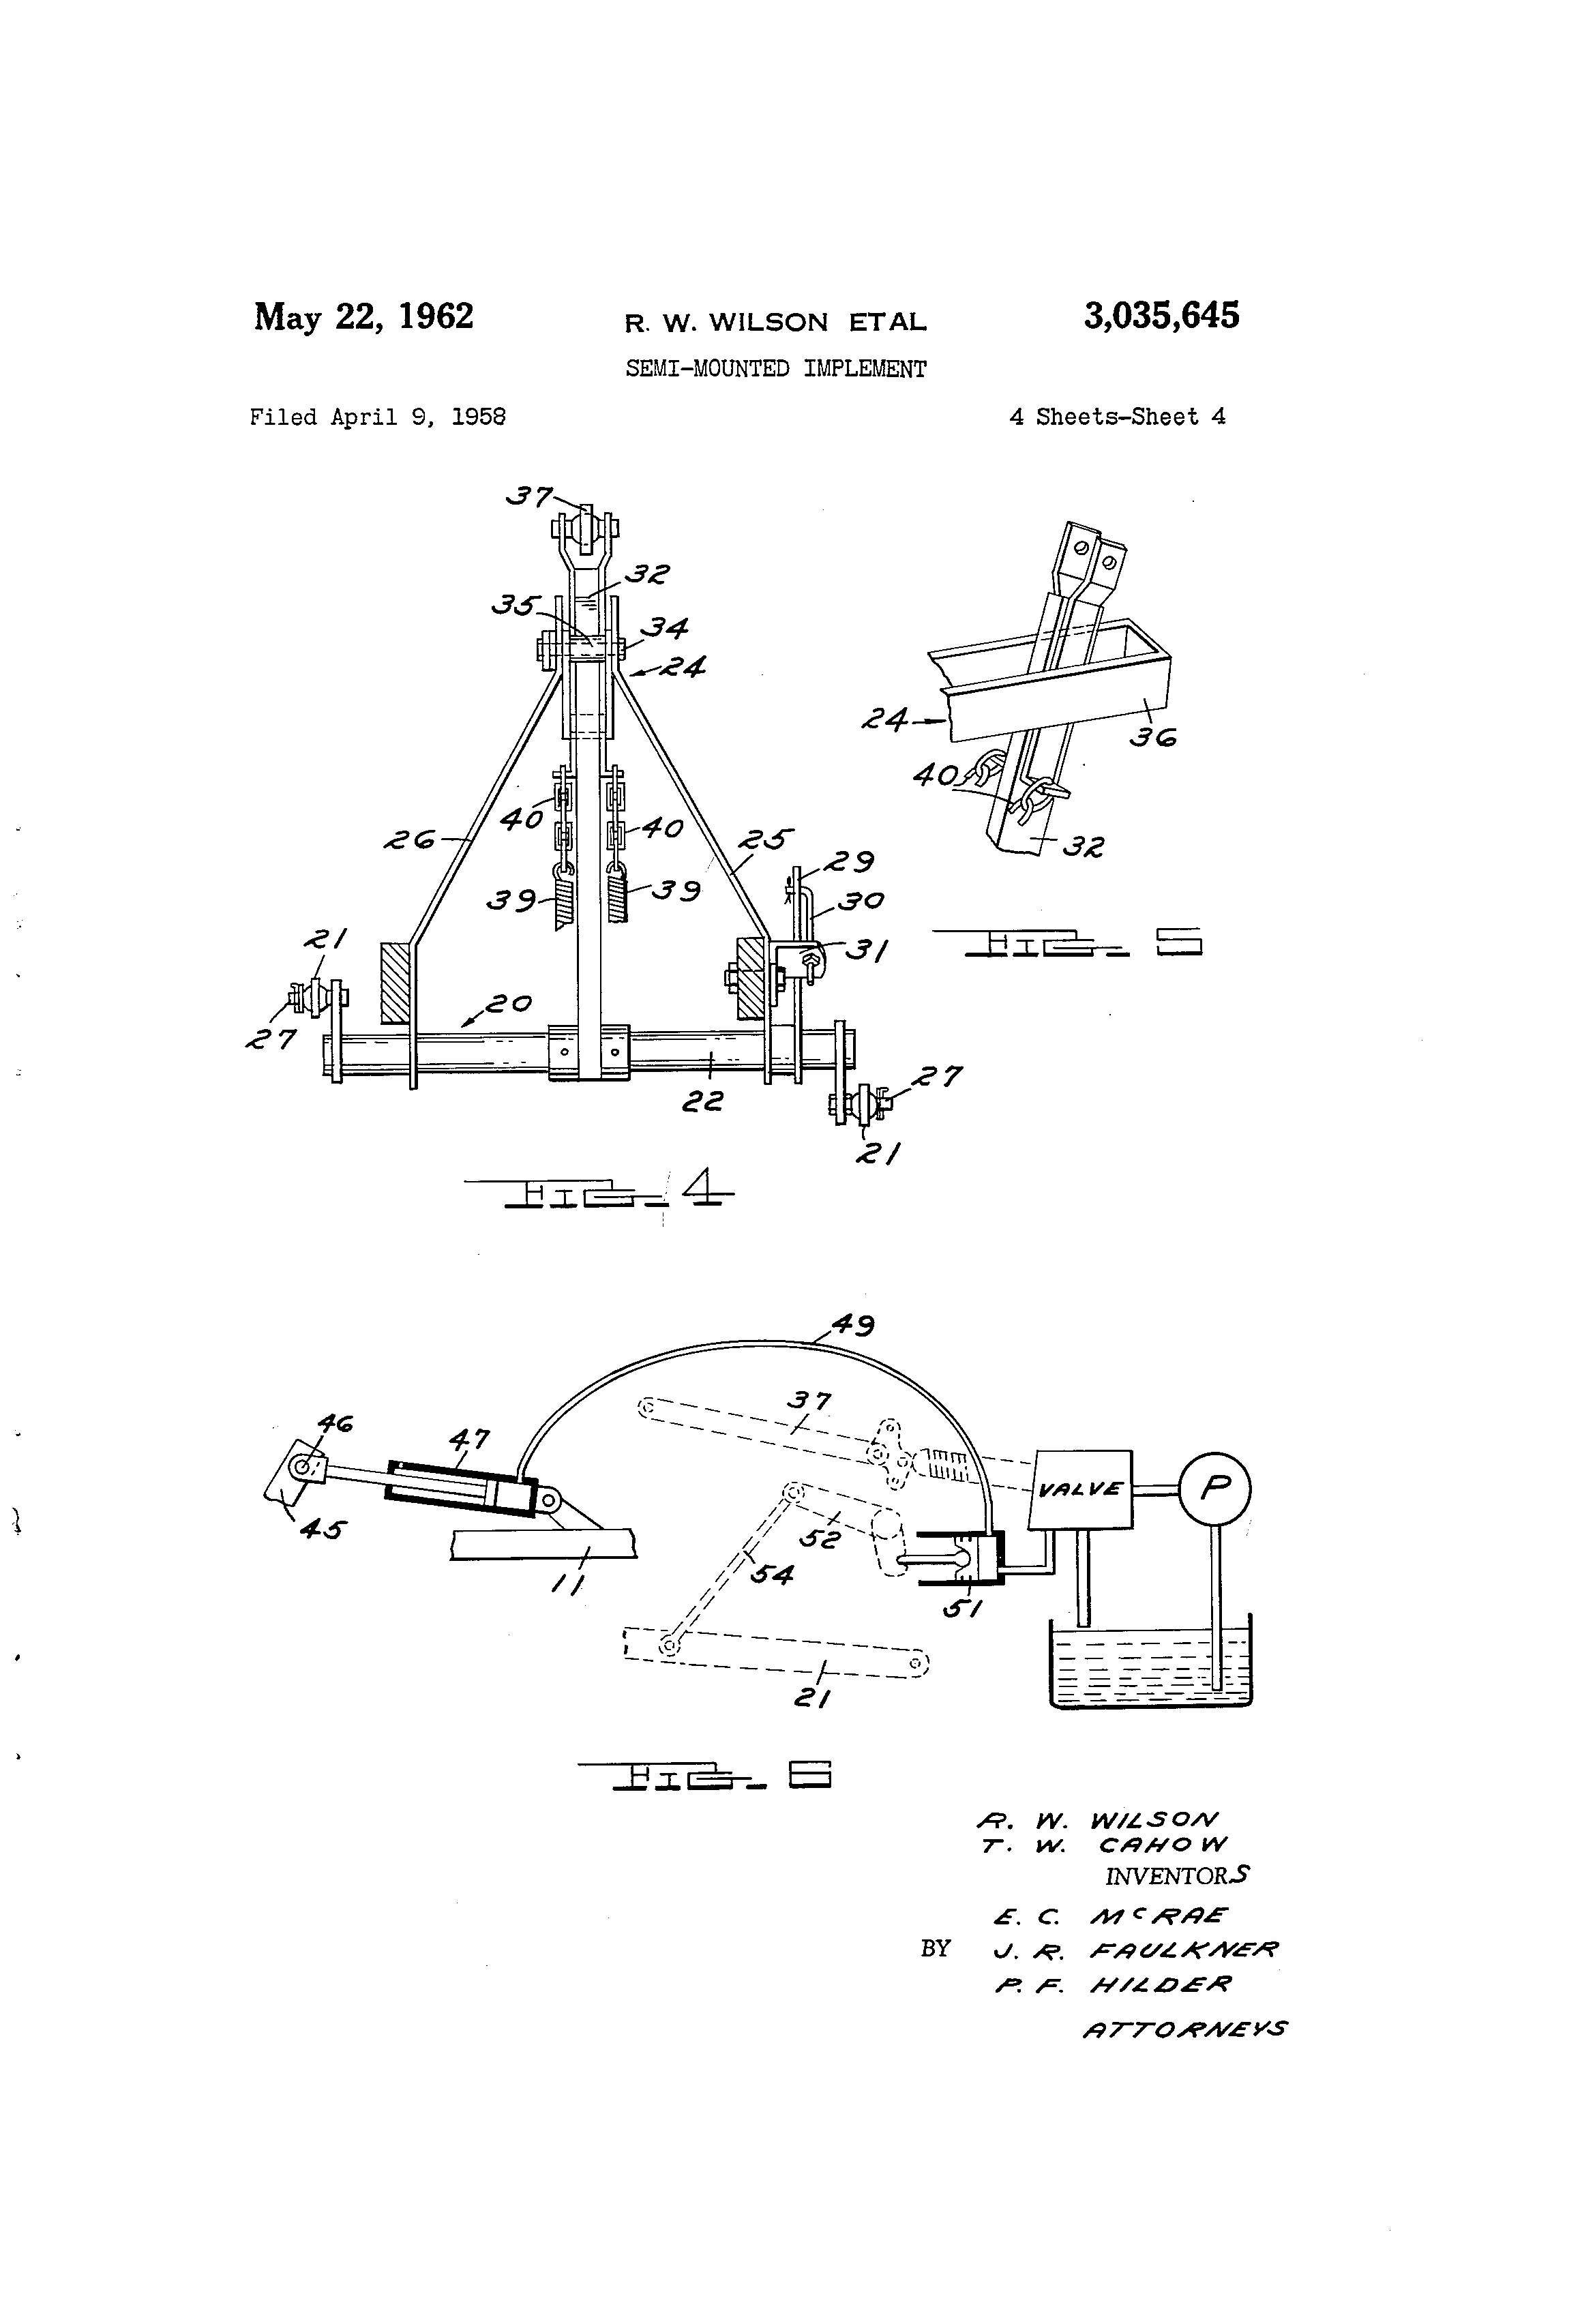 Patent US3035645 - Semi-mounted implement - Google Patents